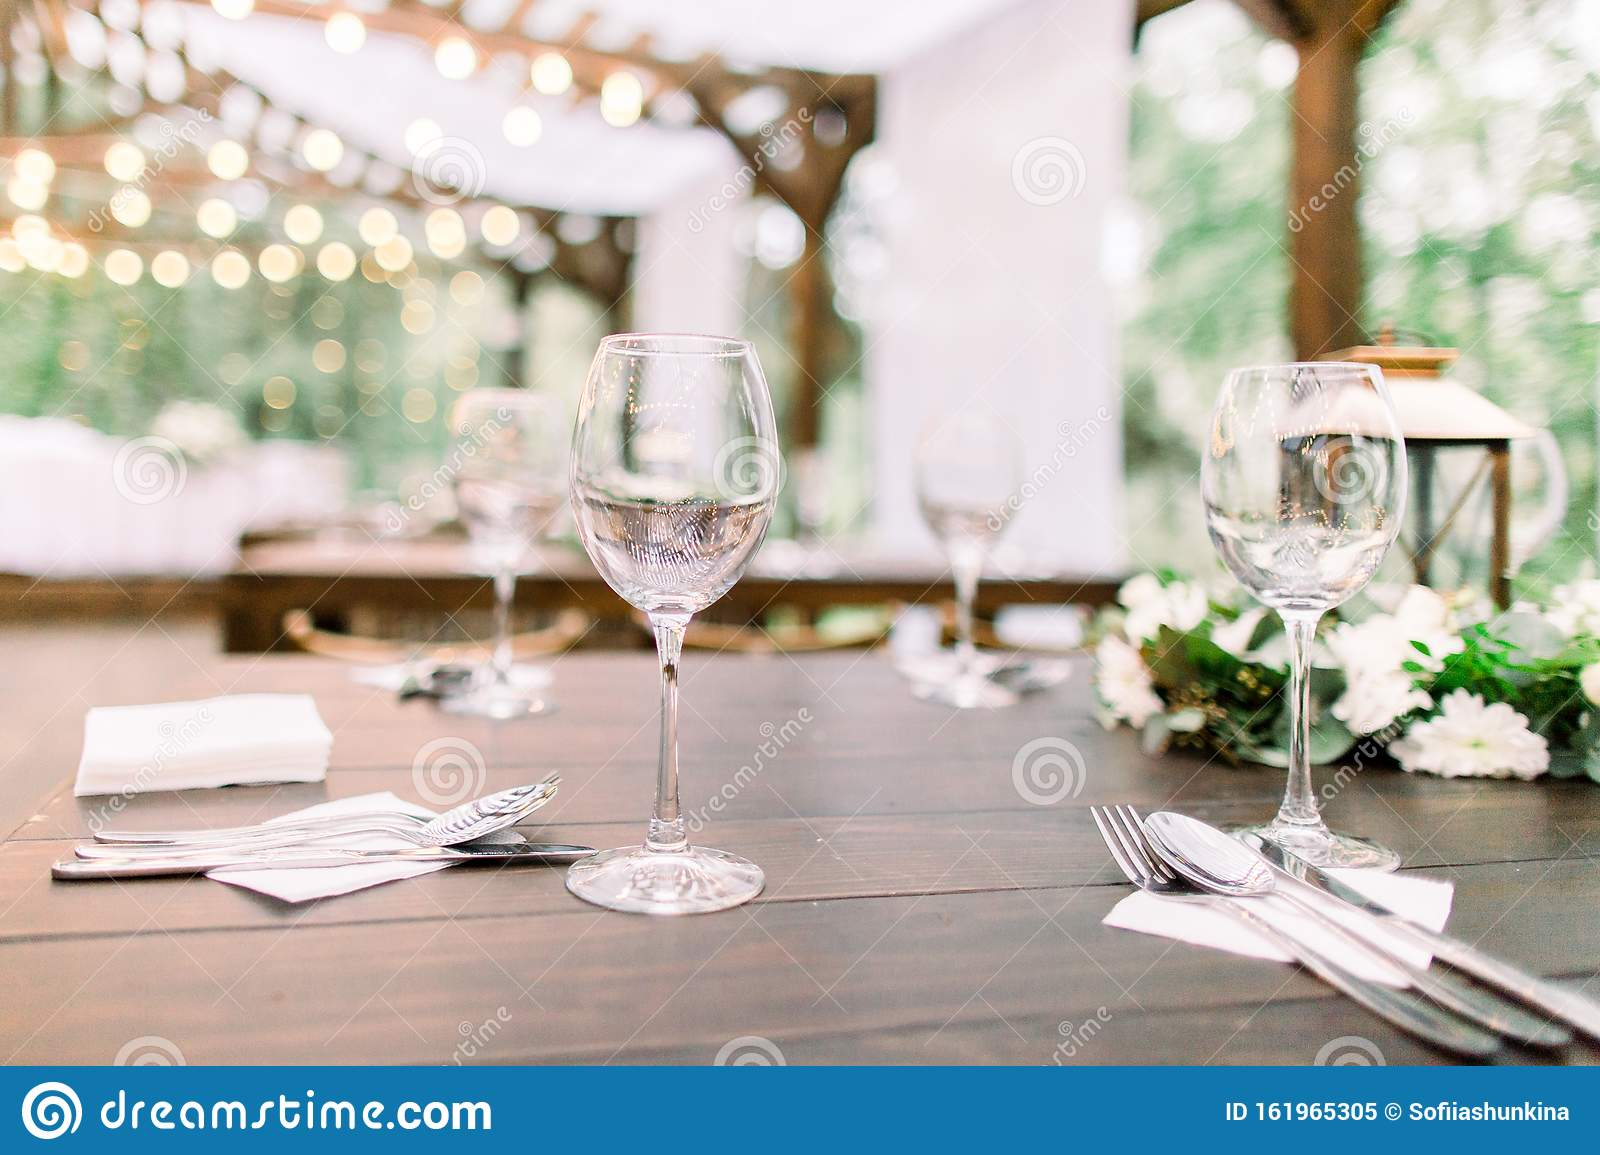 Rustic Table Setting With Floral Decorations Lanterns Wineglasses On The Table Wedding Or Dinner Table In Restaurant Stock Image Image Of Country Bohemia 161965305